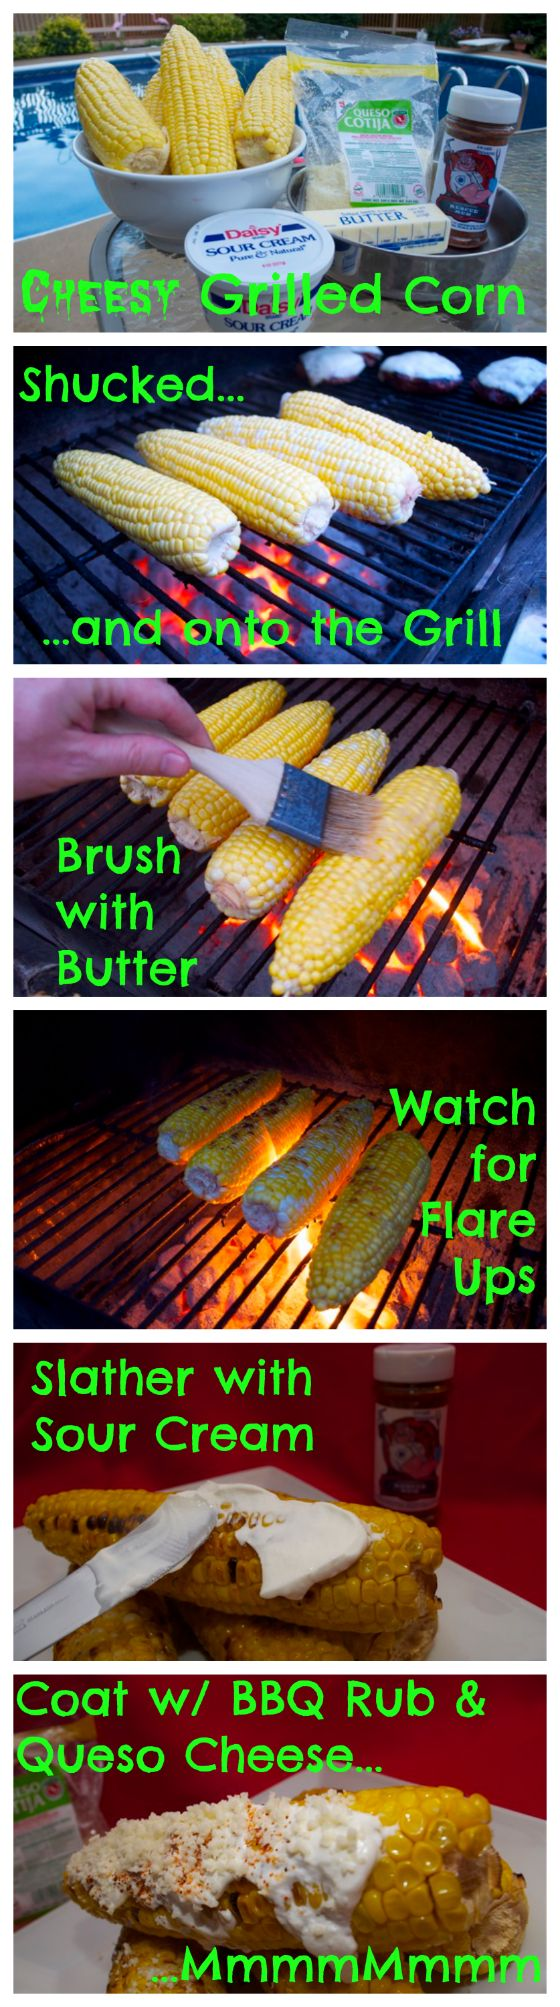 Stop boiling the corn. It leaches flavor out of the corn and puts it into the water. Grill it. And then slather it with sour cream, BBQ rub and queso cheese! By far the best corn I have ever had!